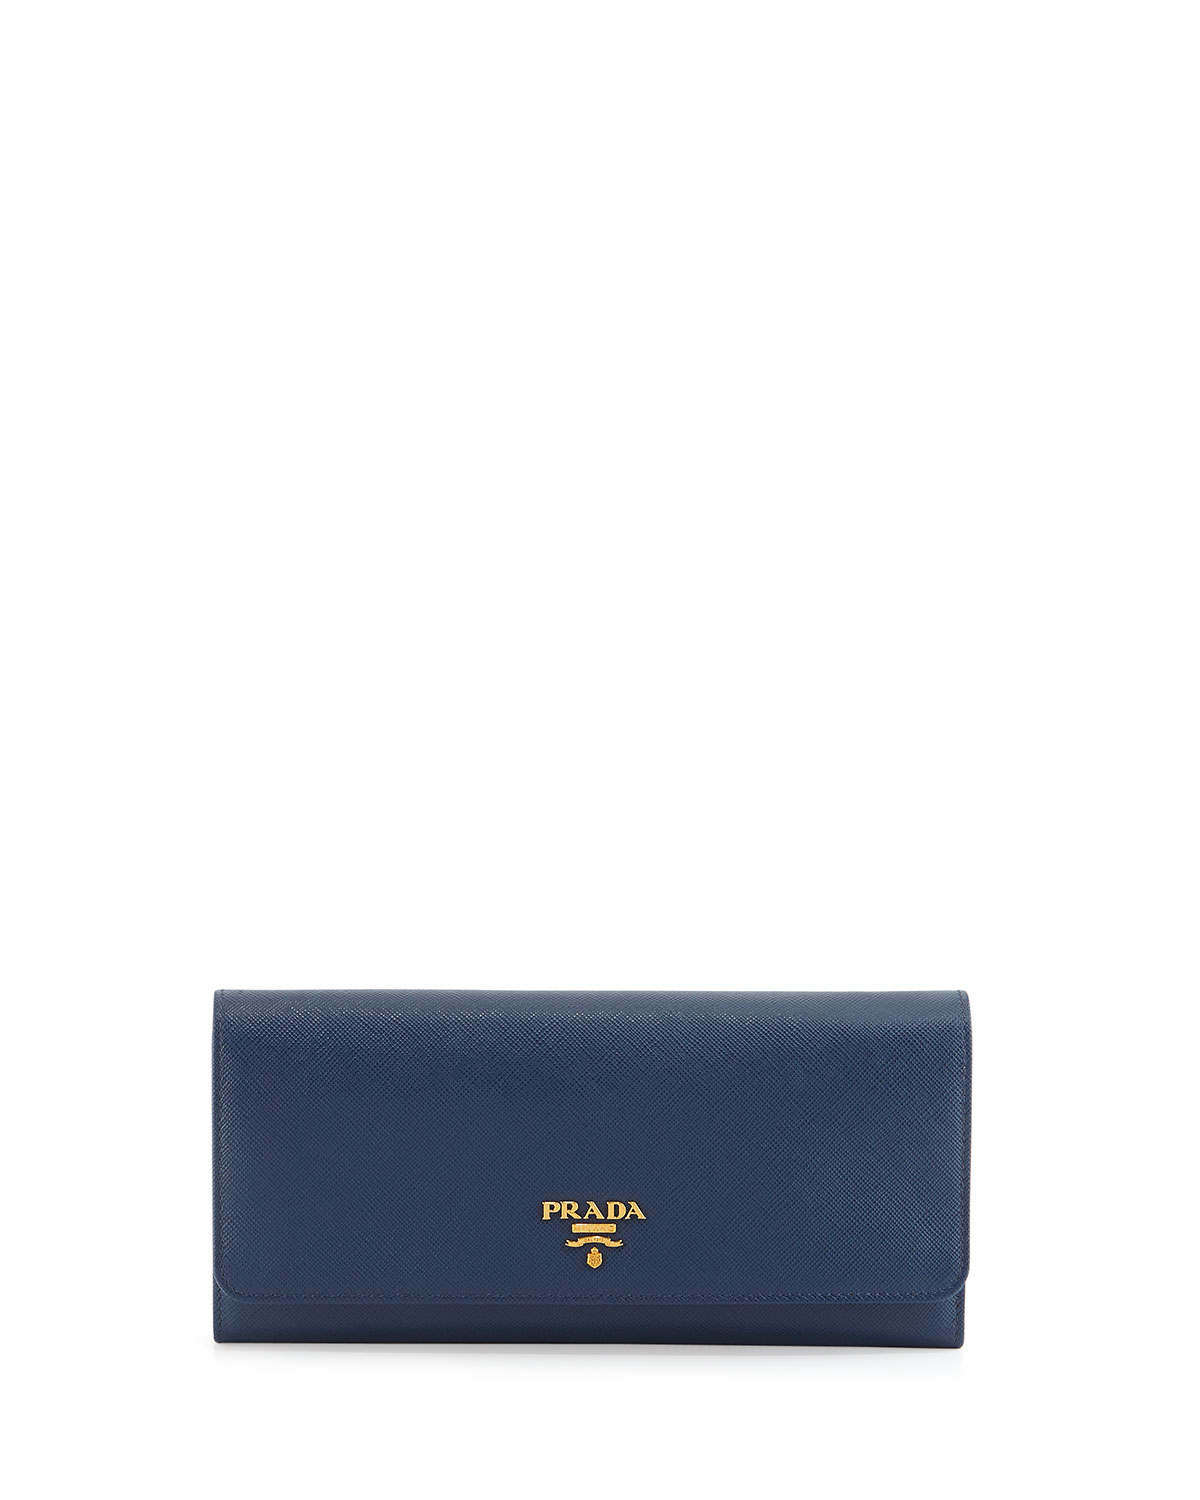 Prada Saffiano Leather Wallet-on-chain in Blue (NAVY) | Lyst